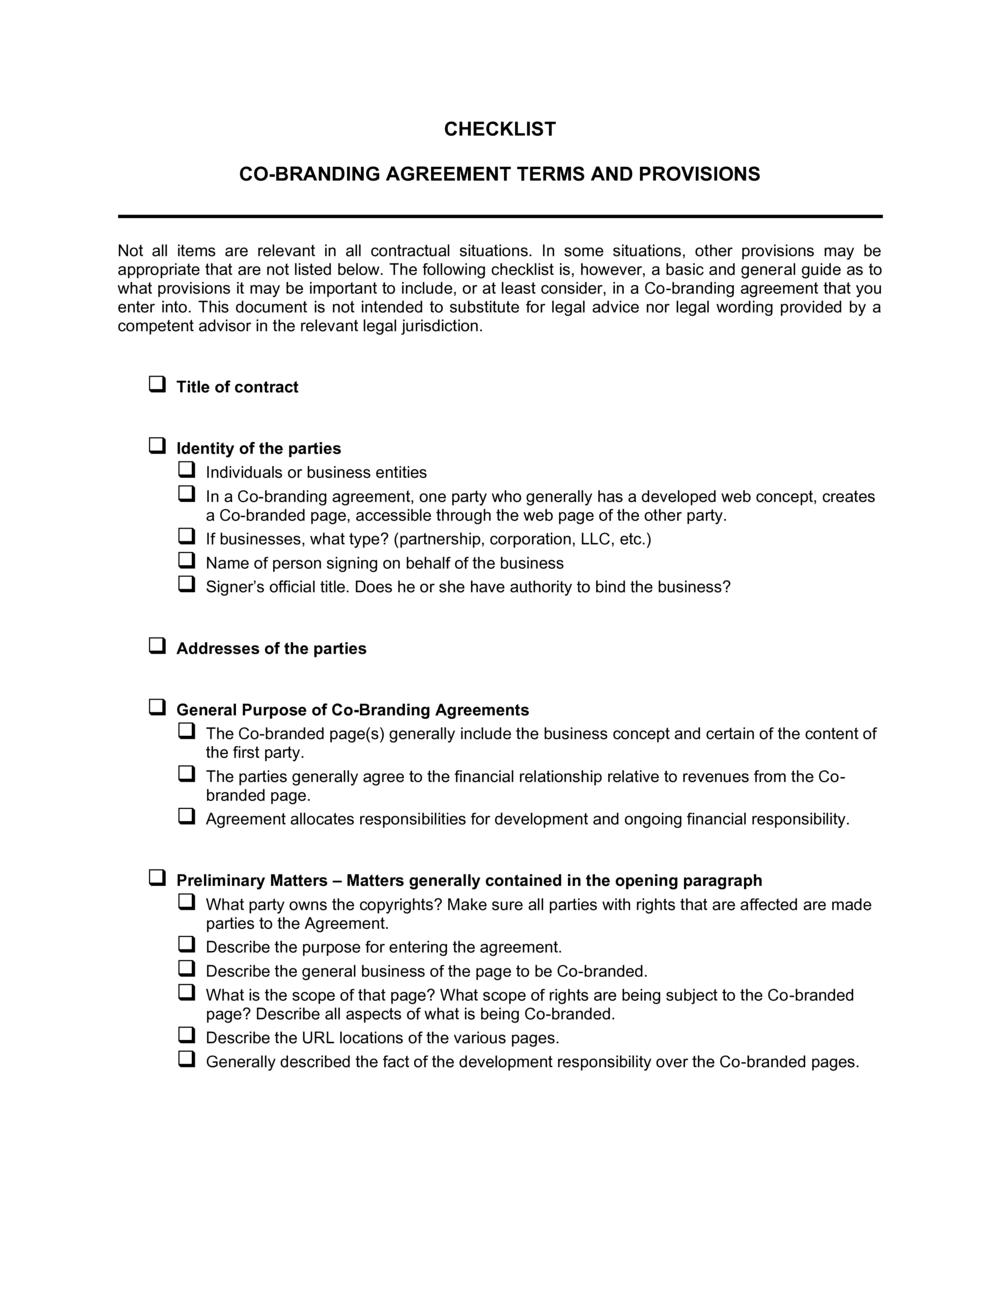 Business-in-a-Box's Checklist Co-Branding Agreement Template